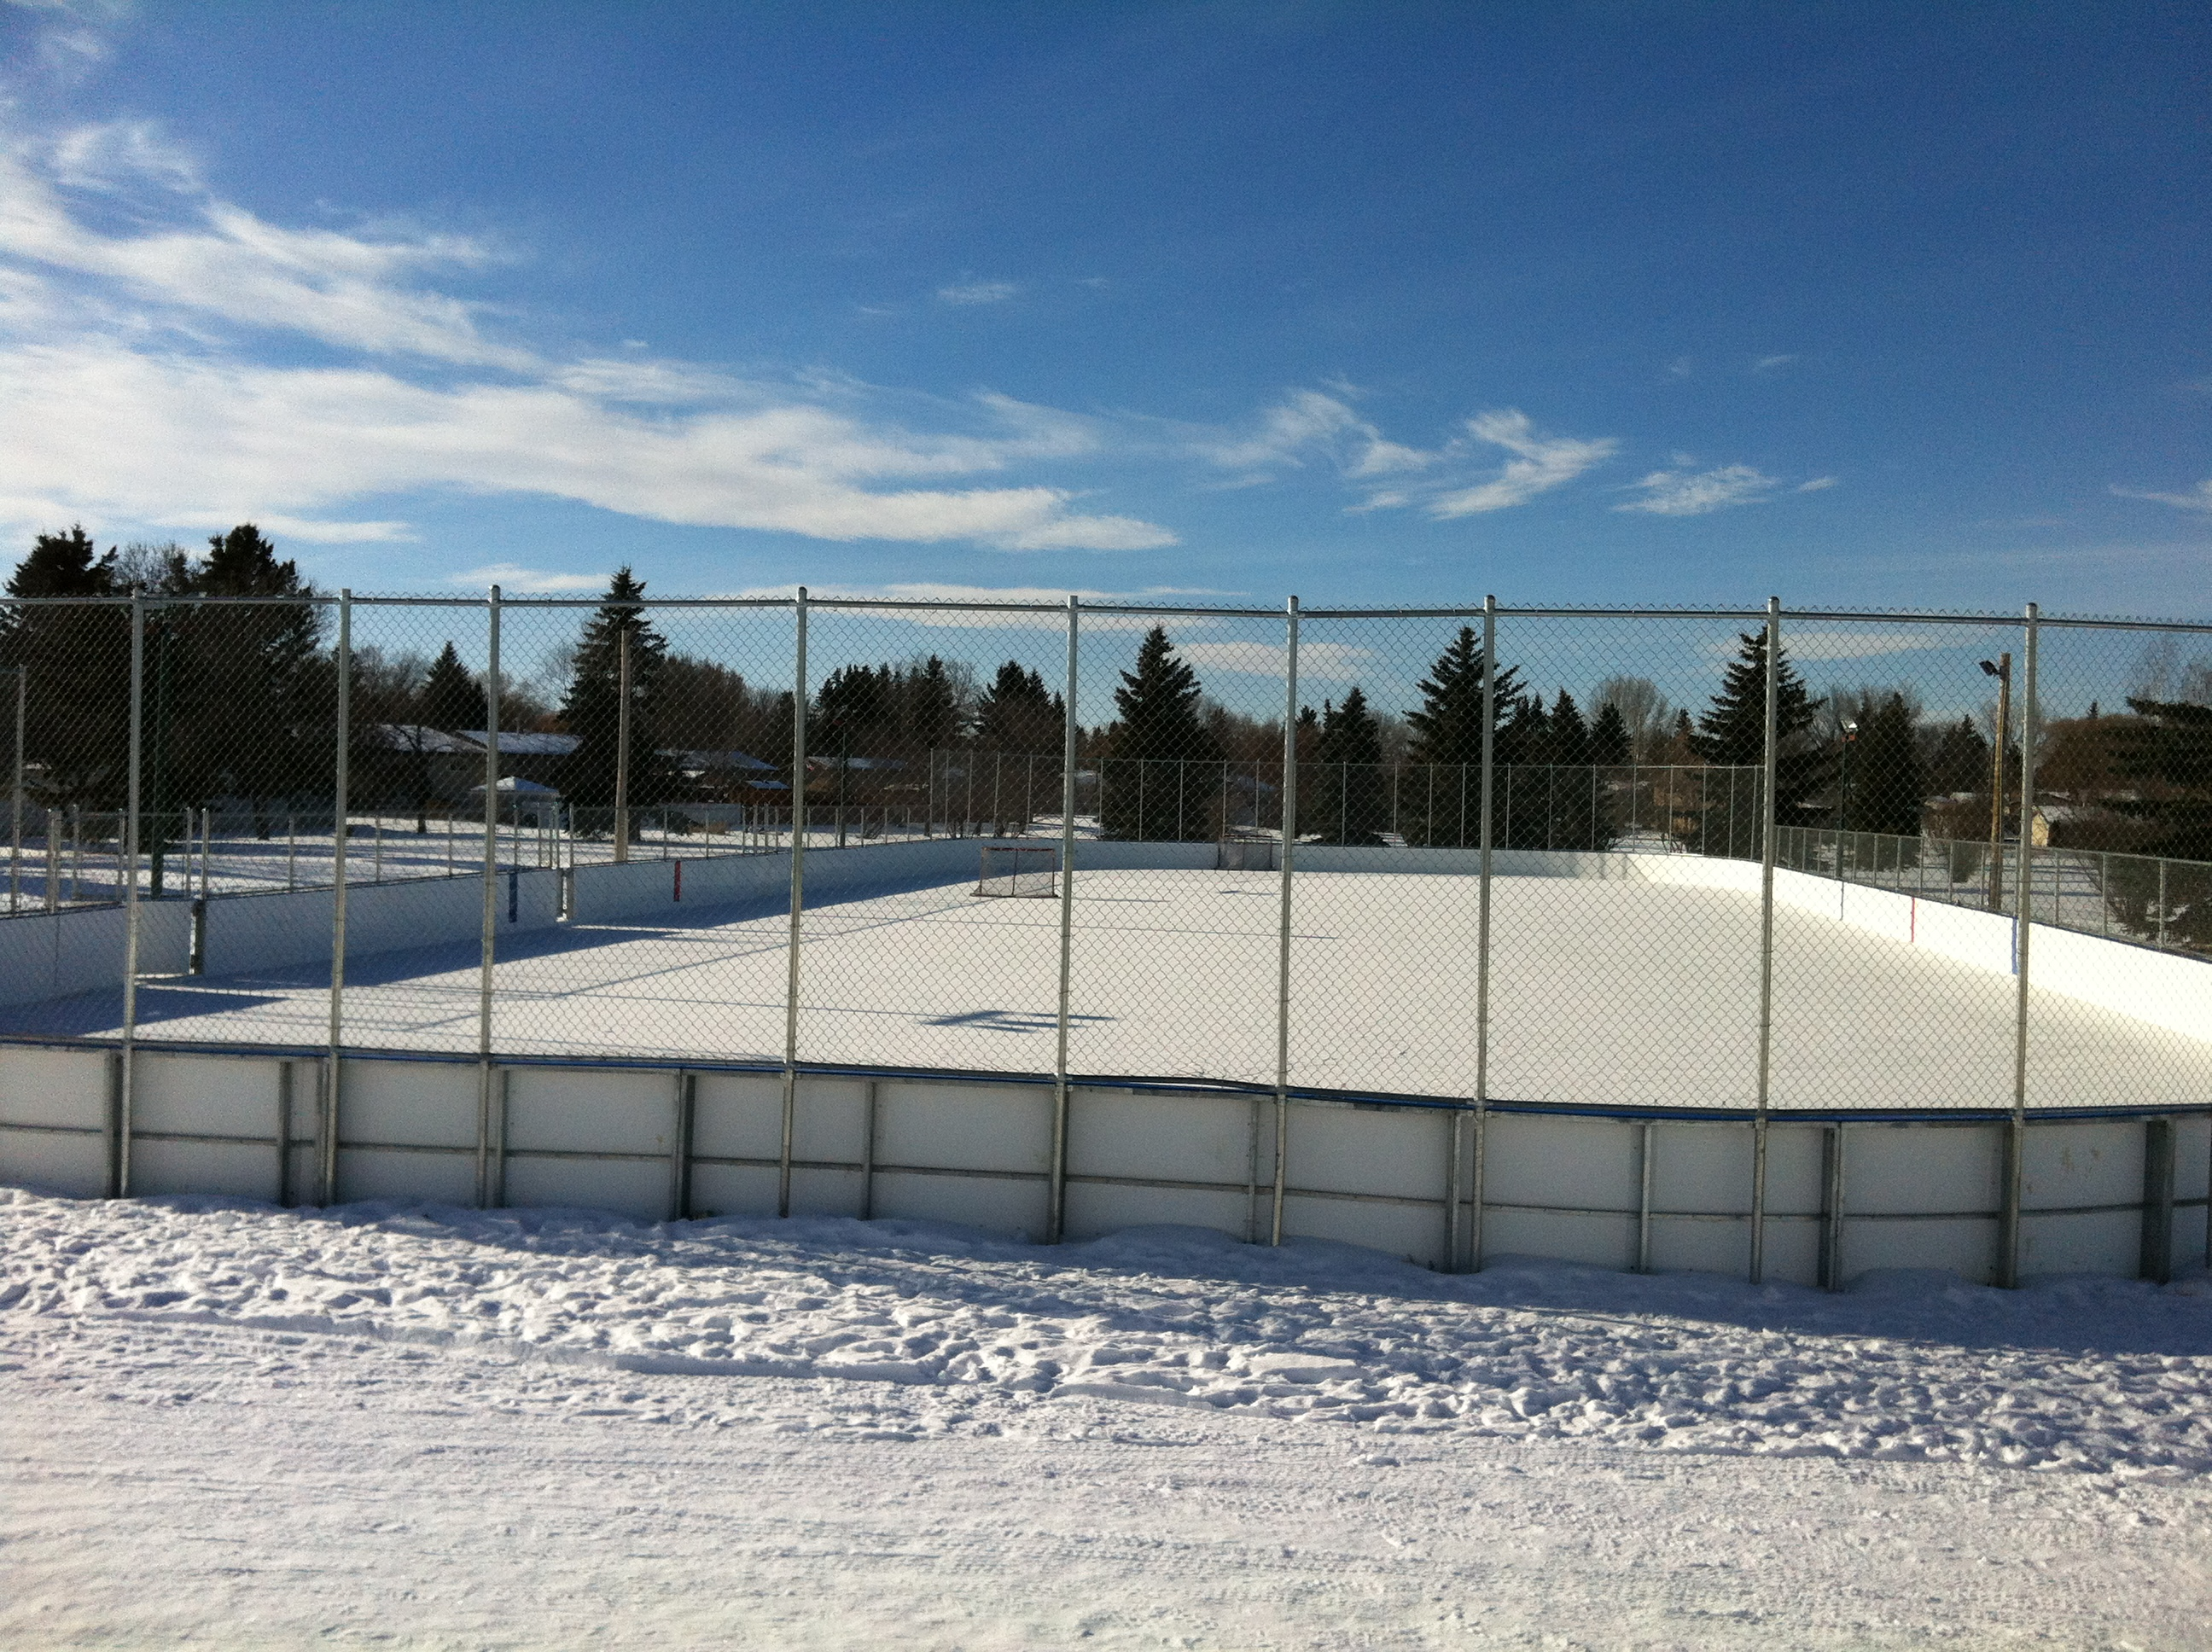 Cres Hts new outdoor rink 2010 (2).JPG